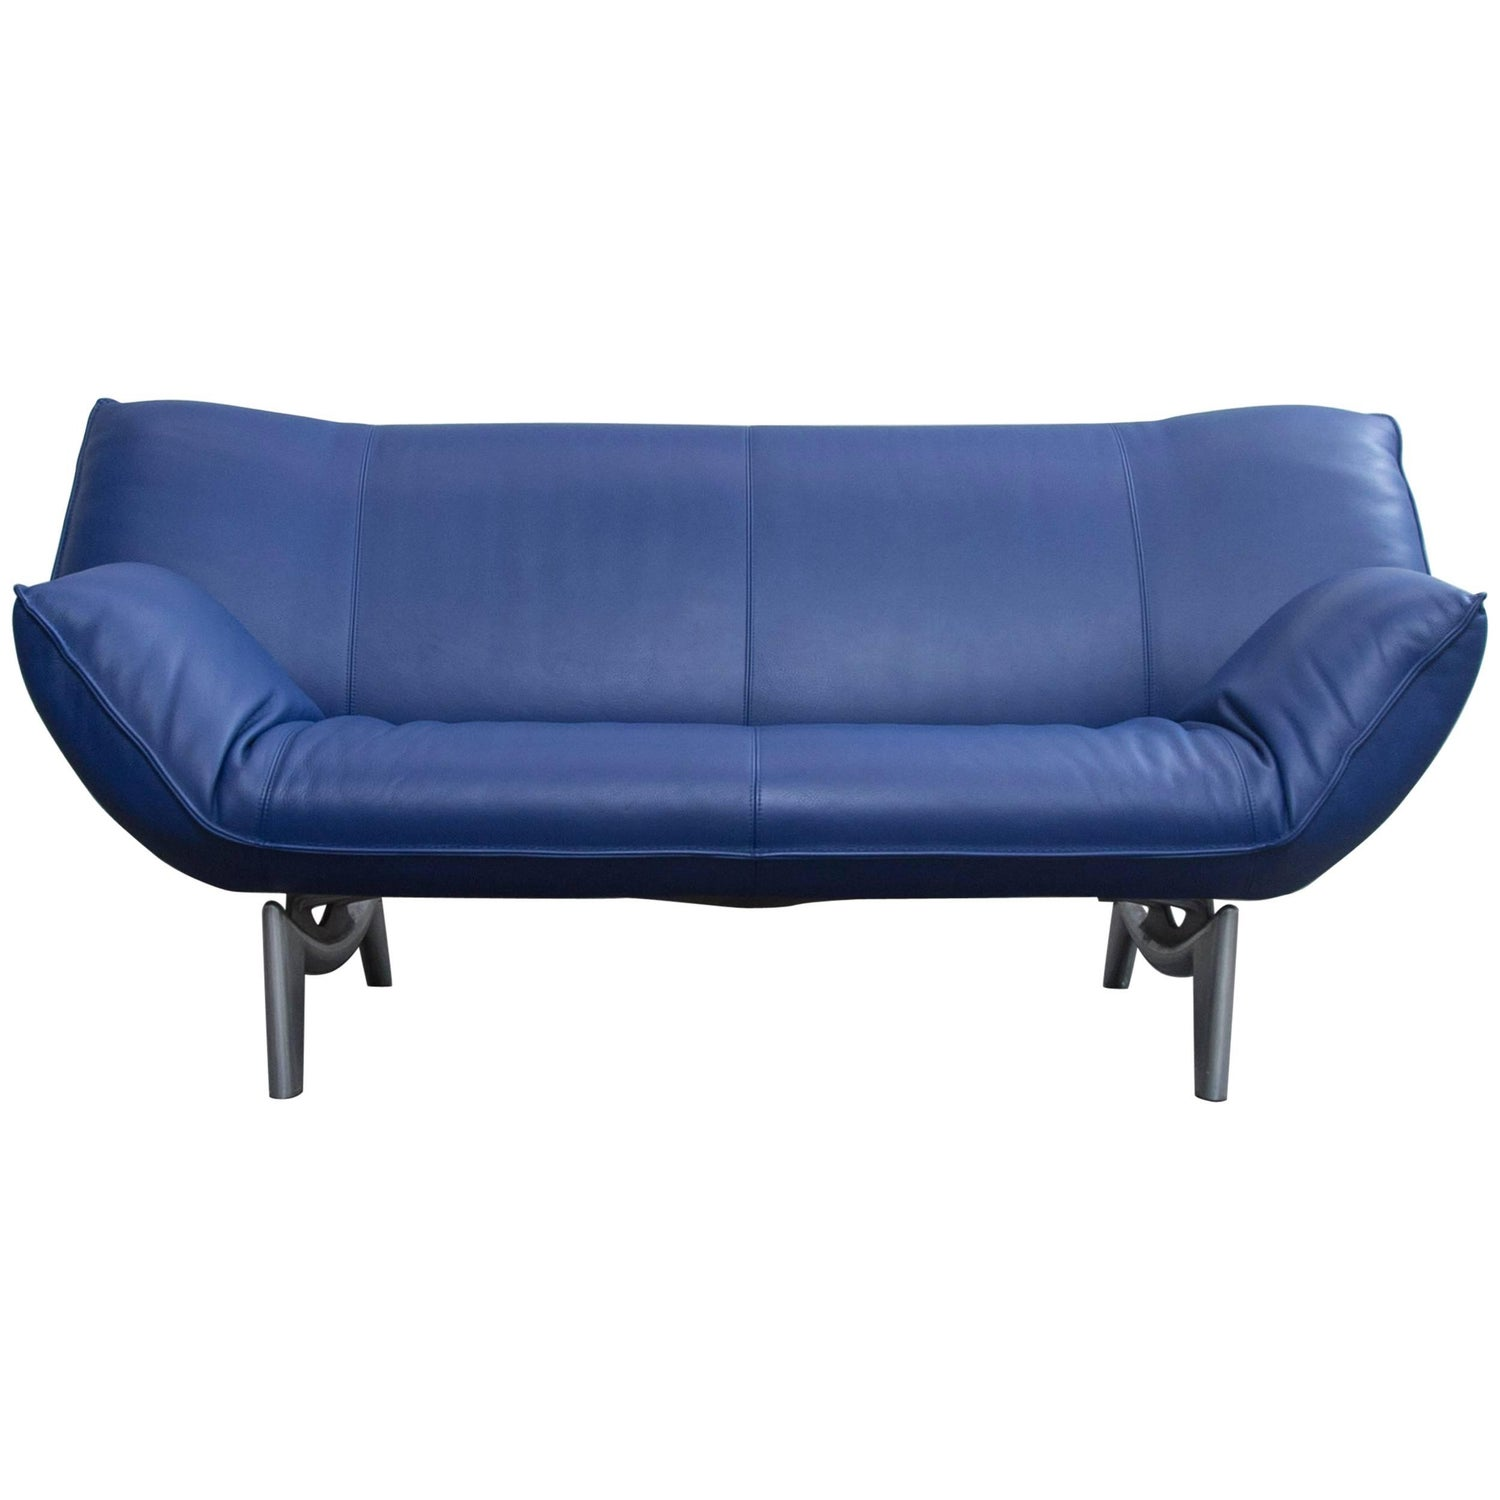 Corner Sofa B Flat by the Dutch Manufacture Leolux For Sale at 1stdibs